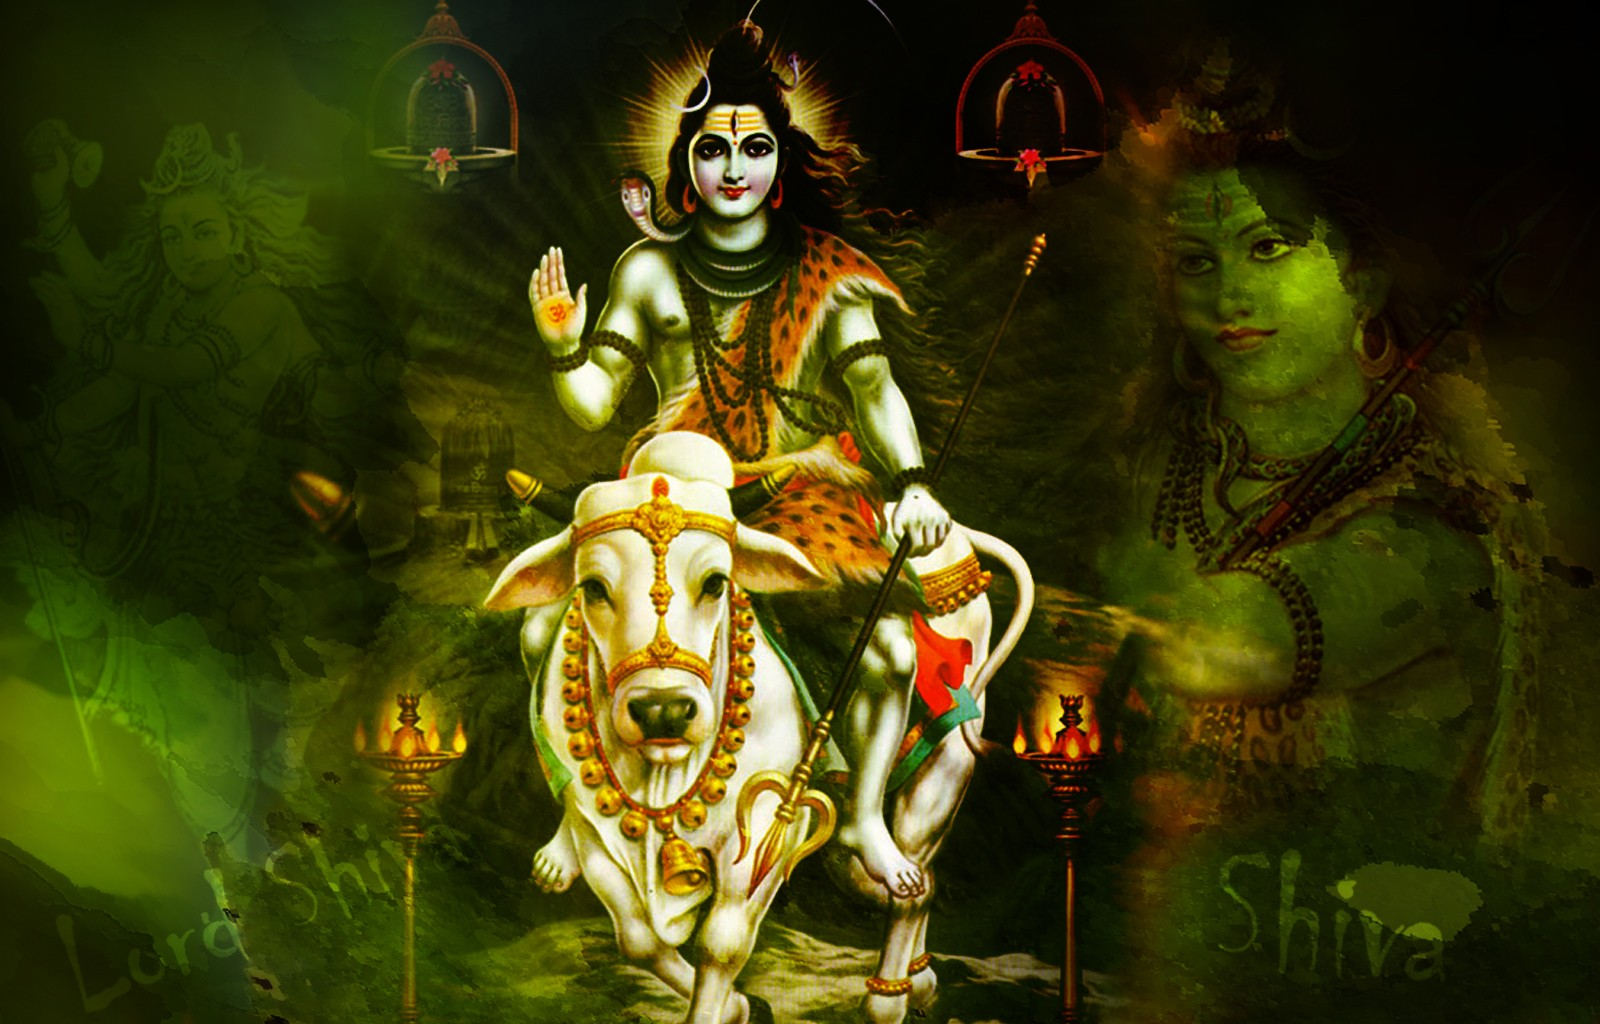 Hd Desktop Wallpapers For Windows 7 Top Best God Shiv Ji Images Photographs Pictures Hd